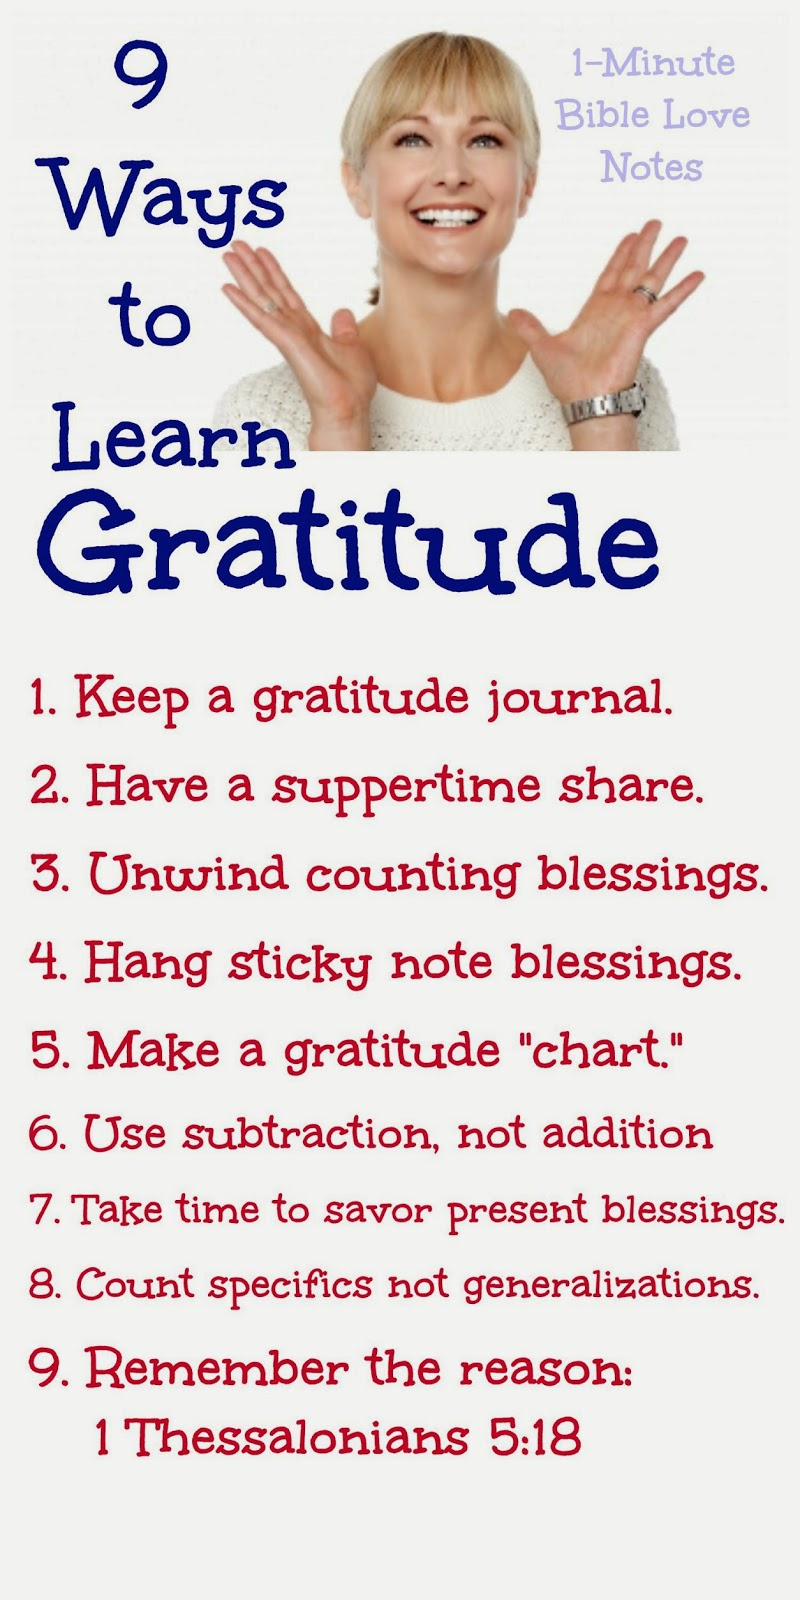 practicing gratitude, learning gratitude, ideas for being more grateful